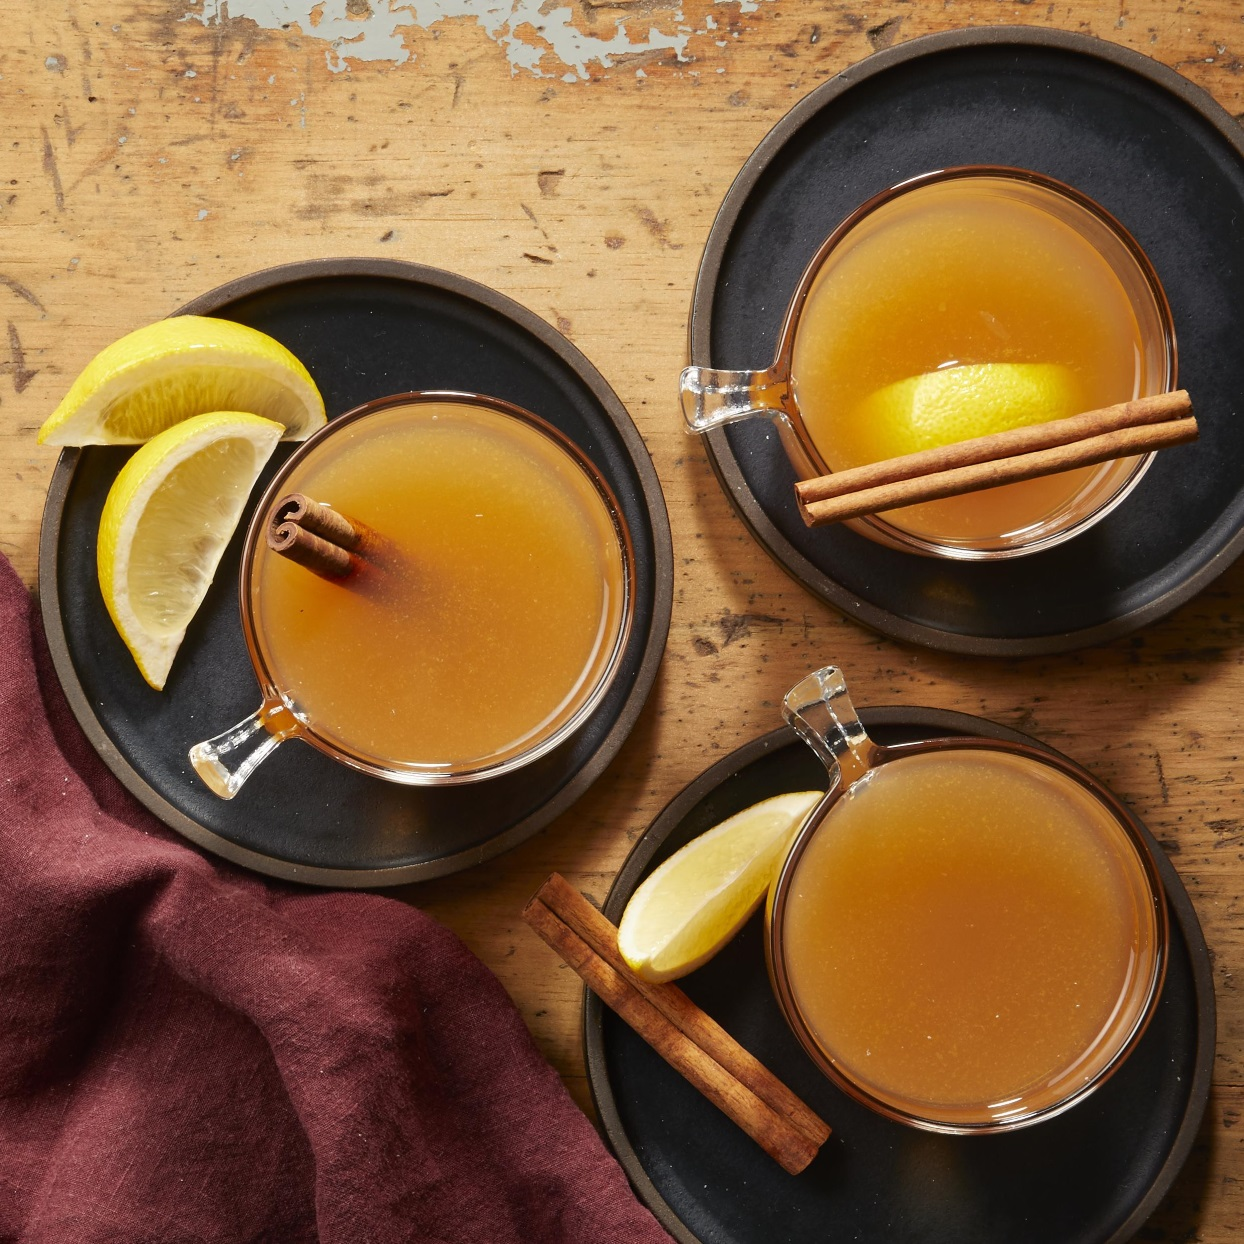 Cinnamon, cloves and ginger infuse apple cider with fall flavor.